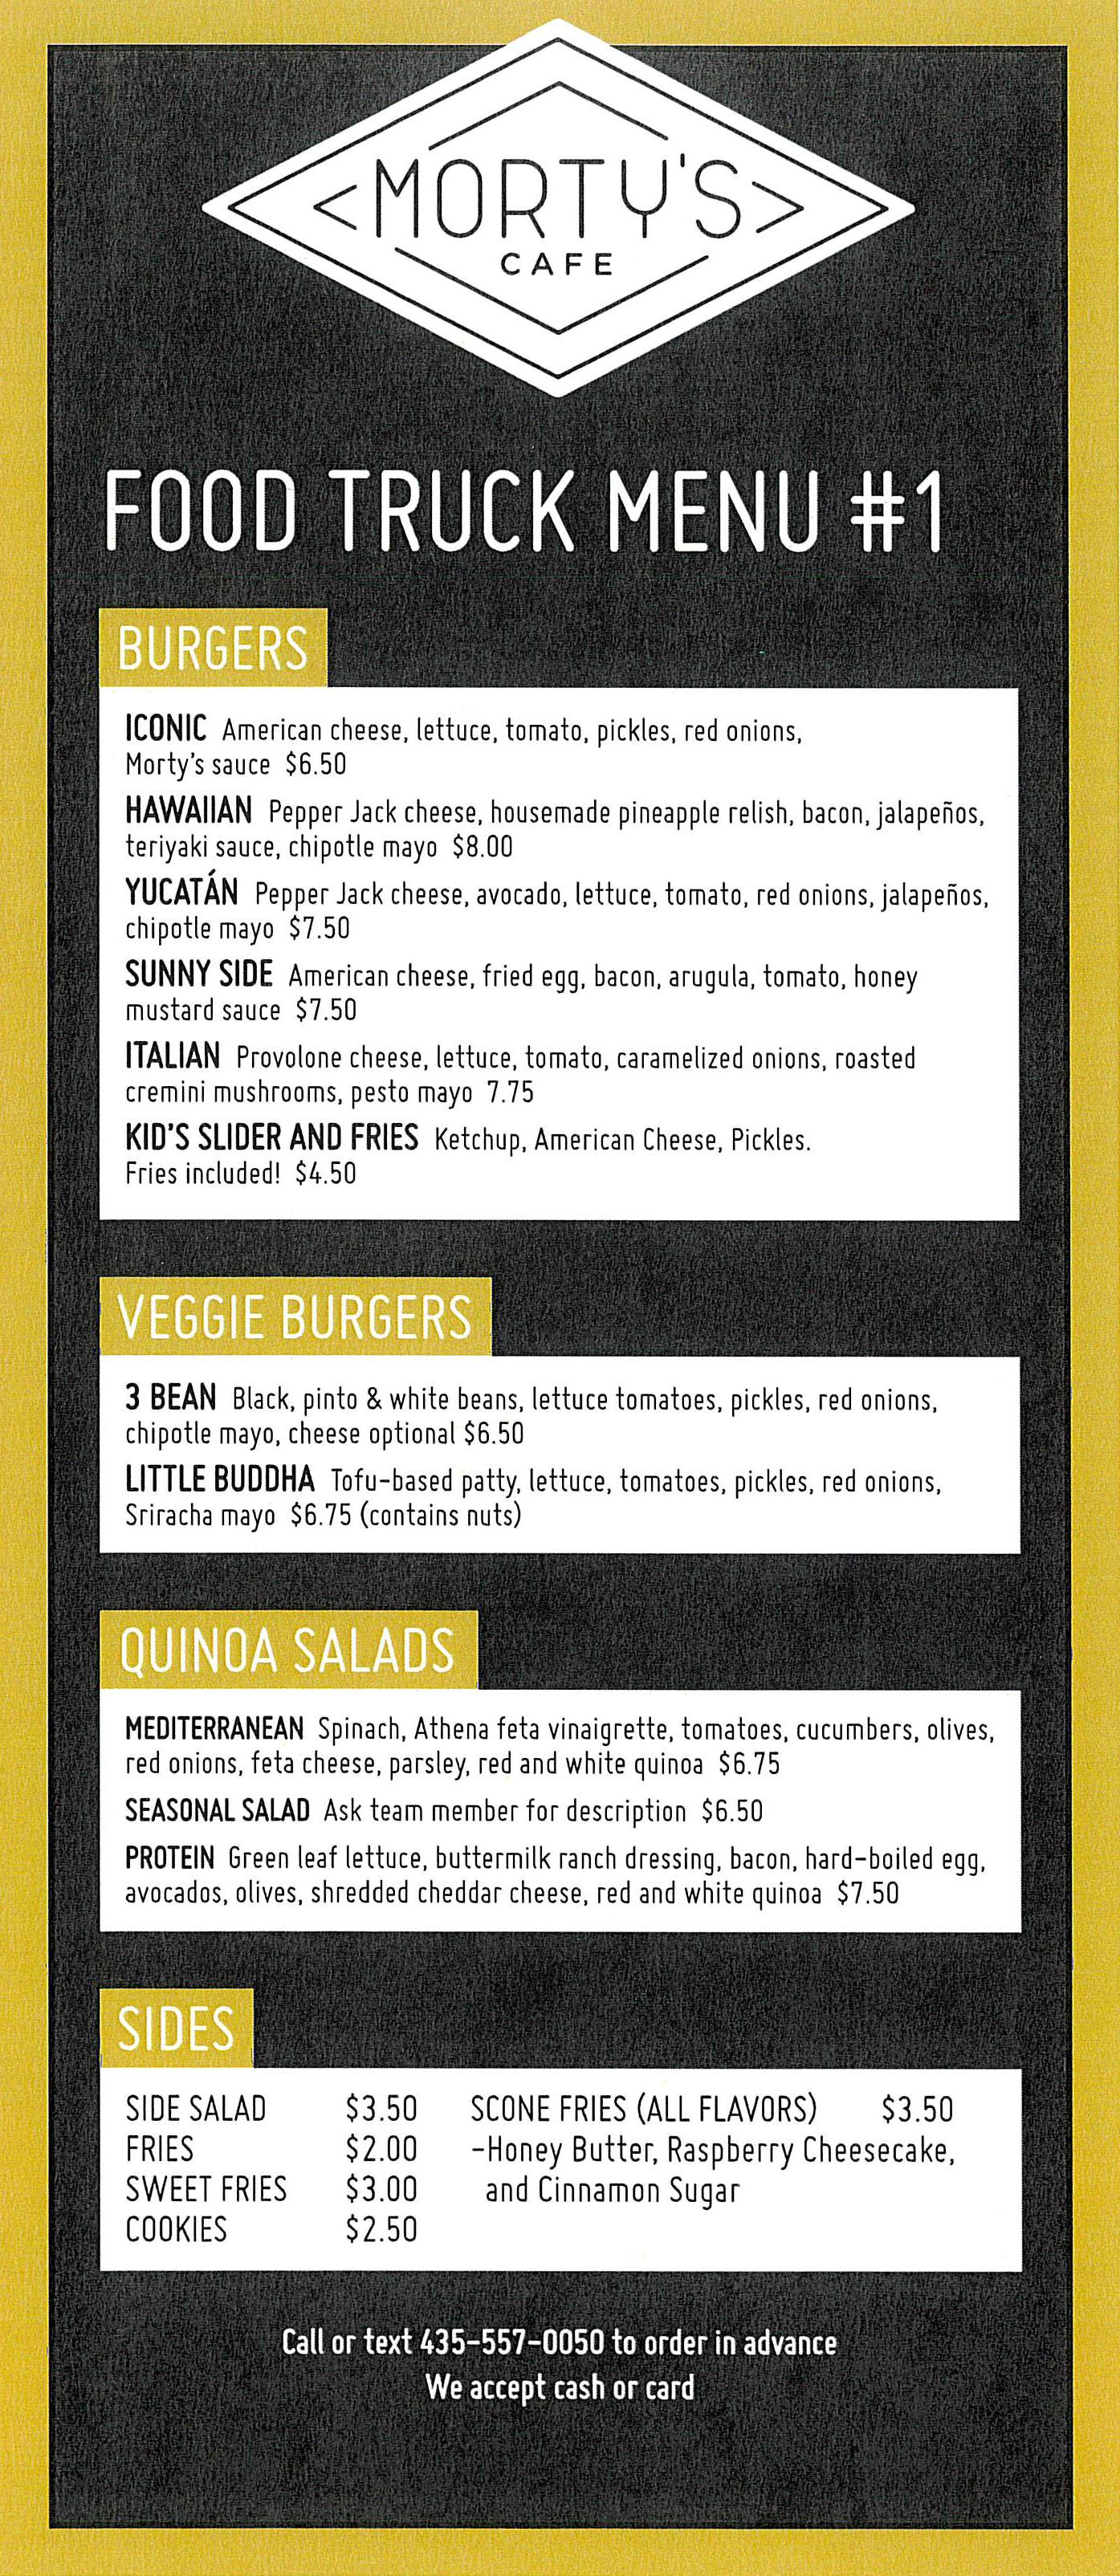 Morty Cafe Food Truck Menu 18